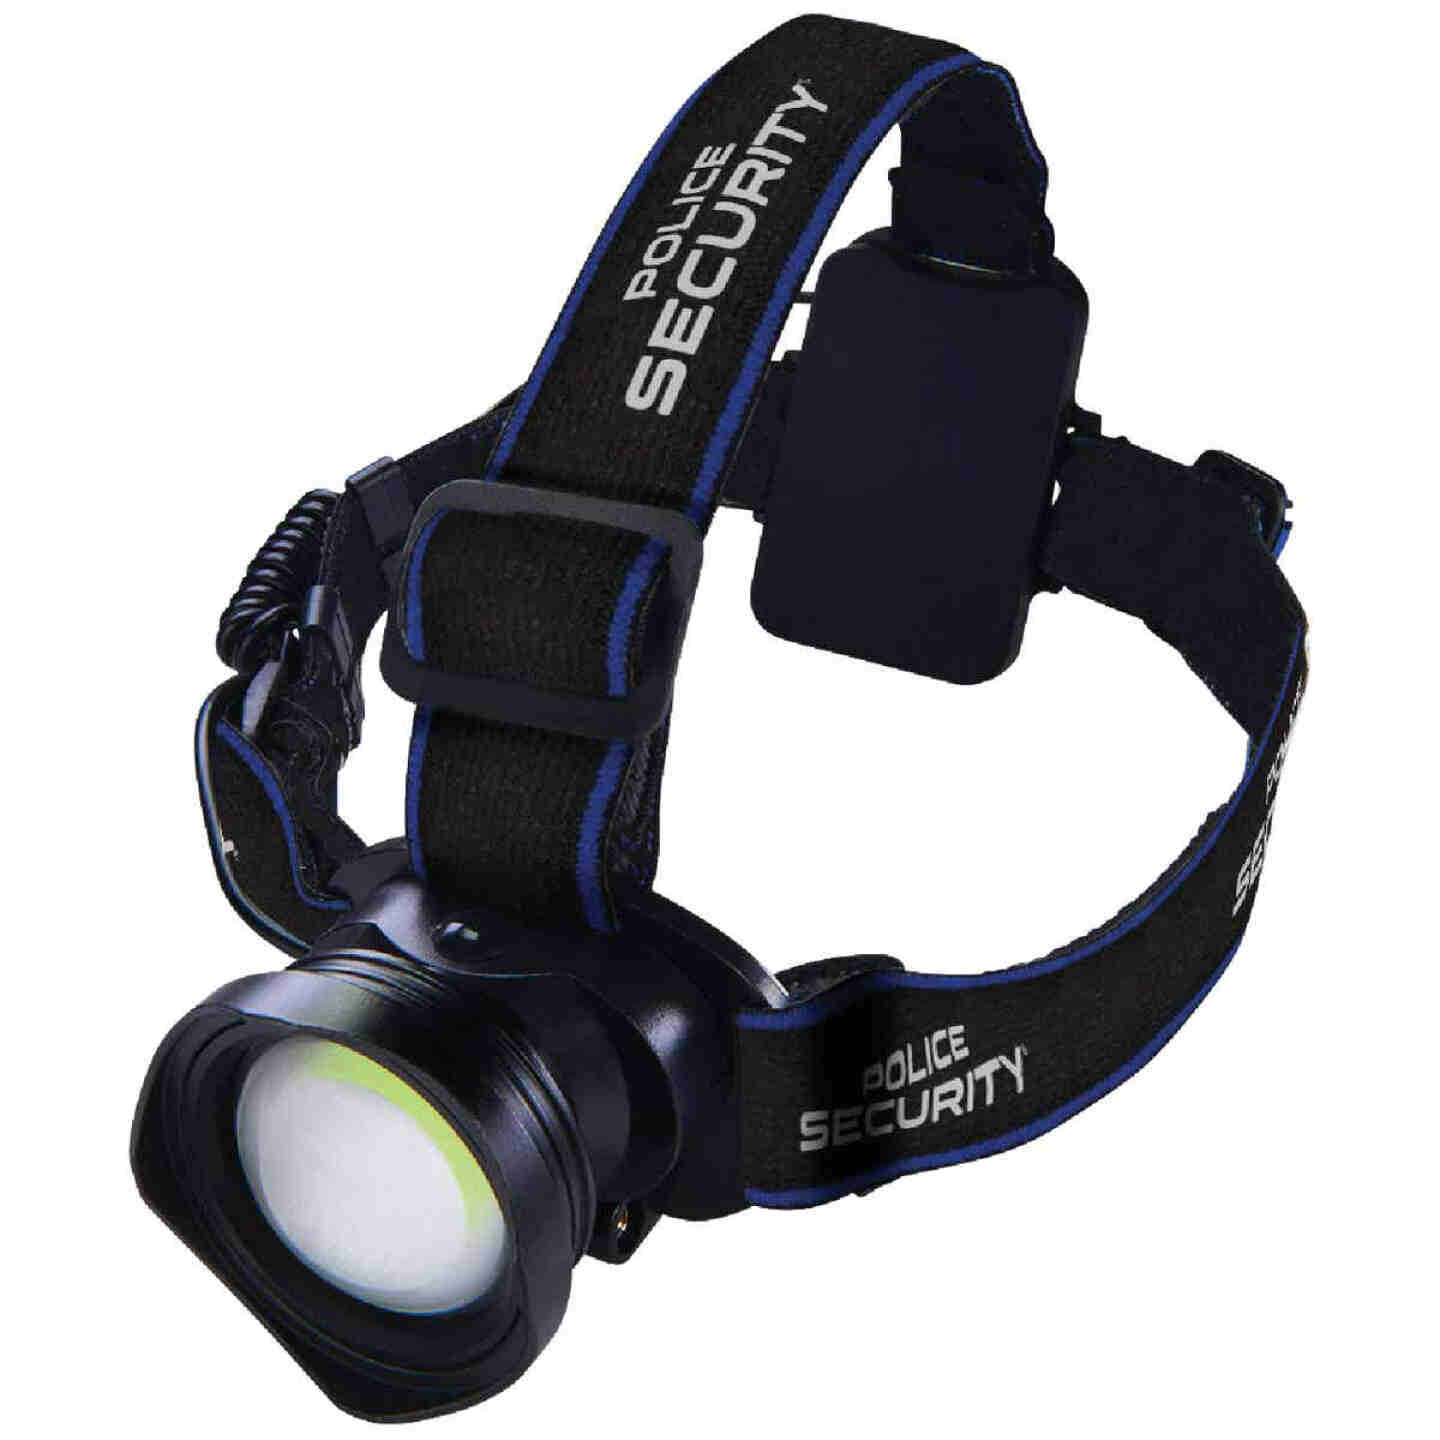 Police Security Breakout 400 Lm. 3 AAA COB LED Headlamp Image 1